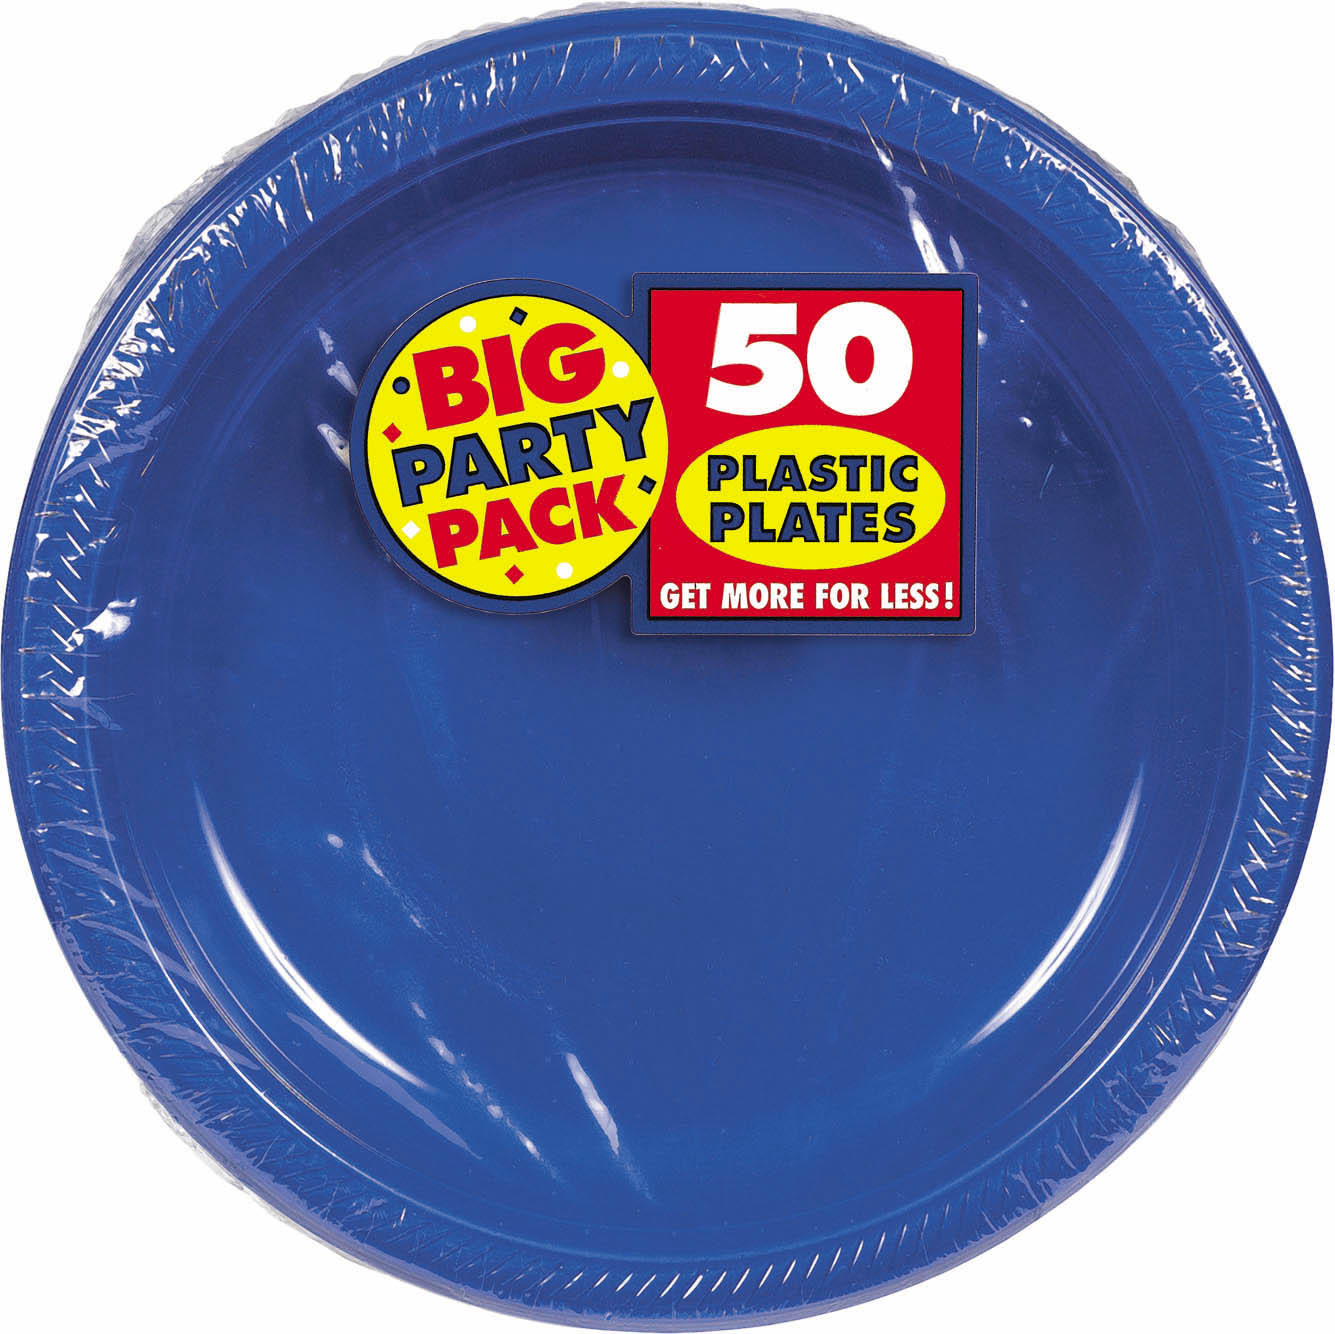 Big Party Pack 10 1/4 inch Plastic Plates- Bright Royal Blue